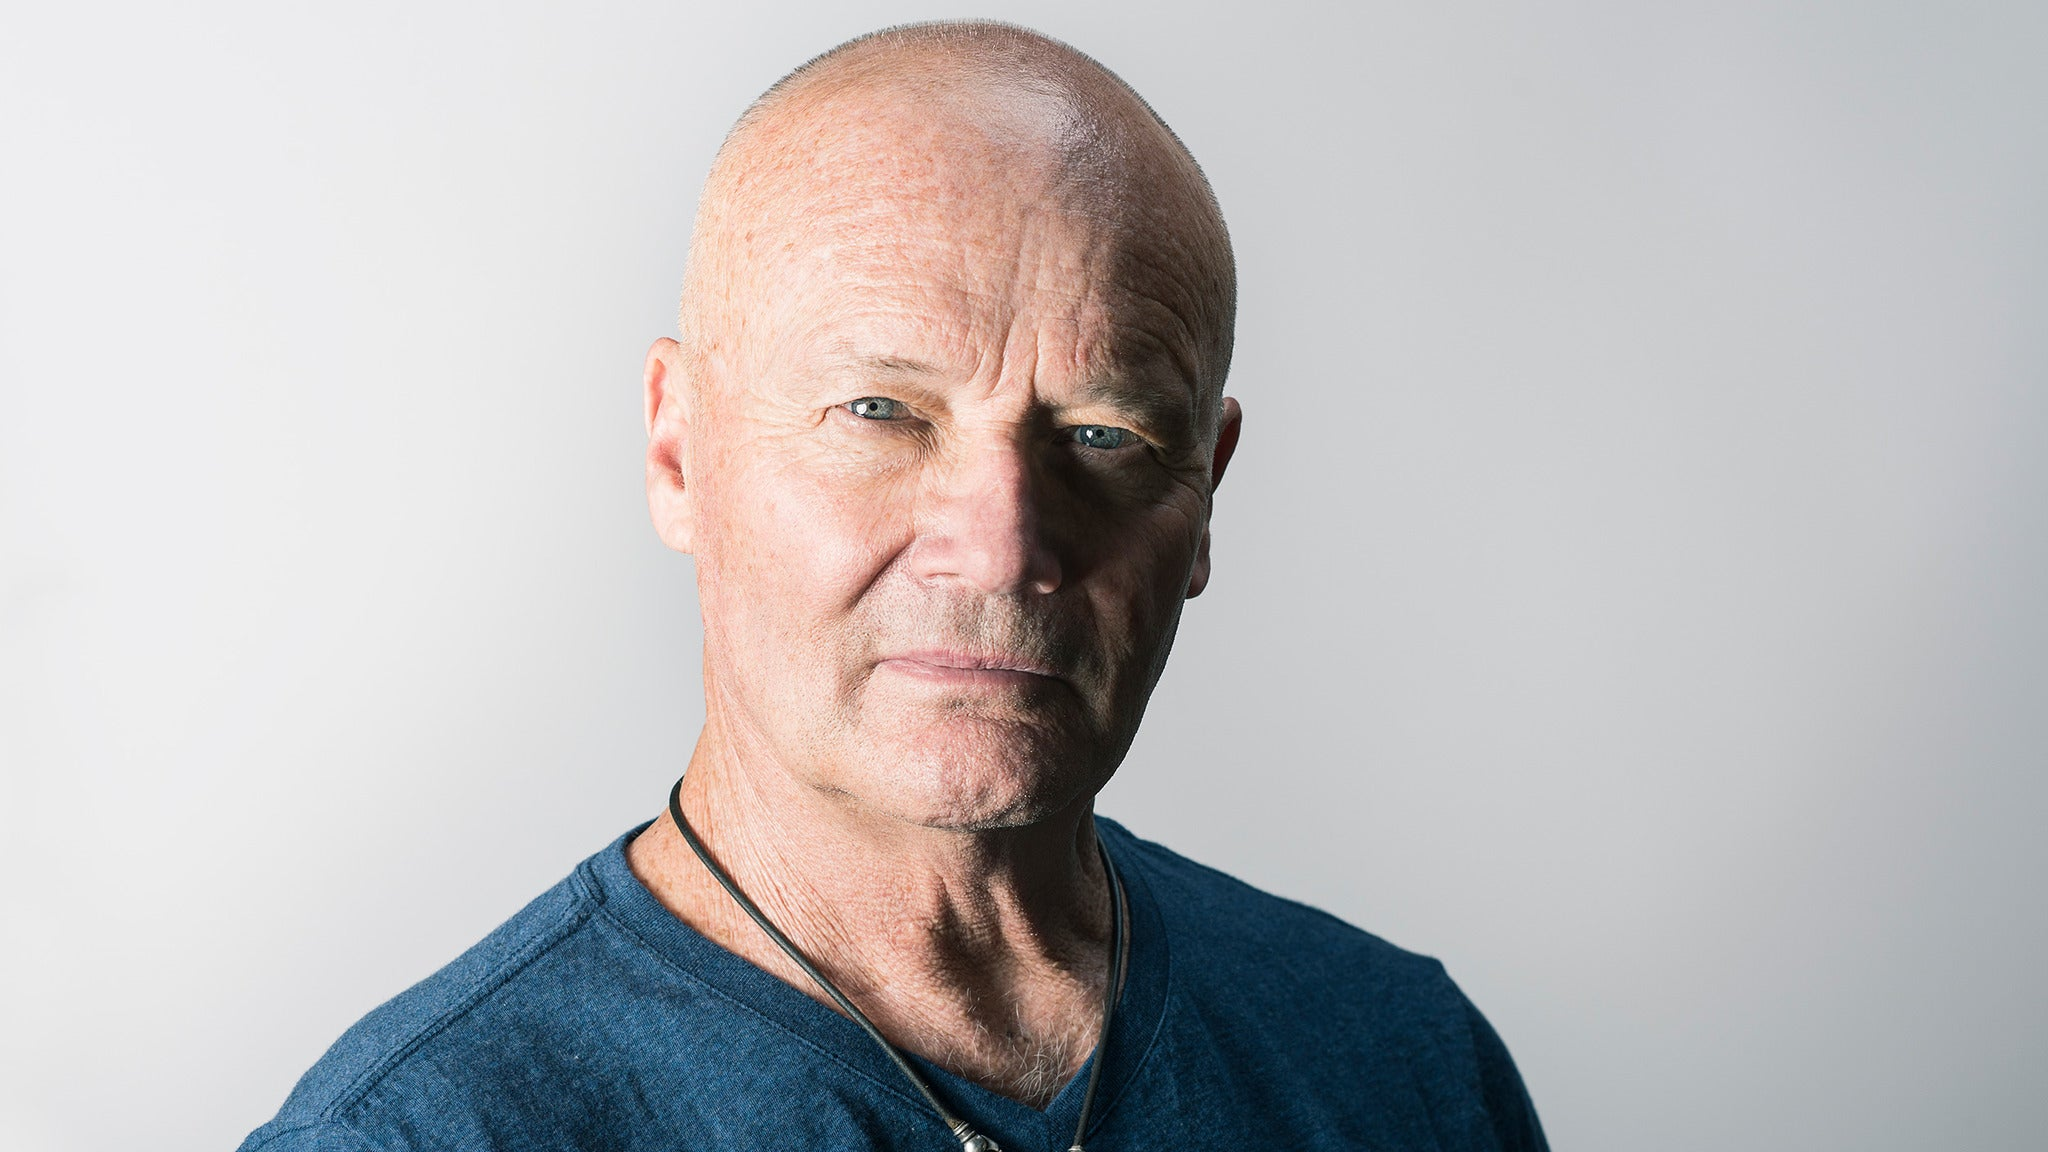 Creed Bratton (from The Office) at The Coach House